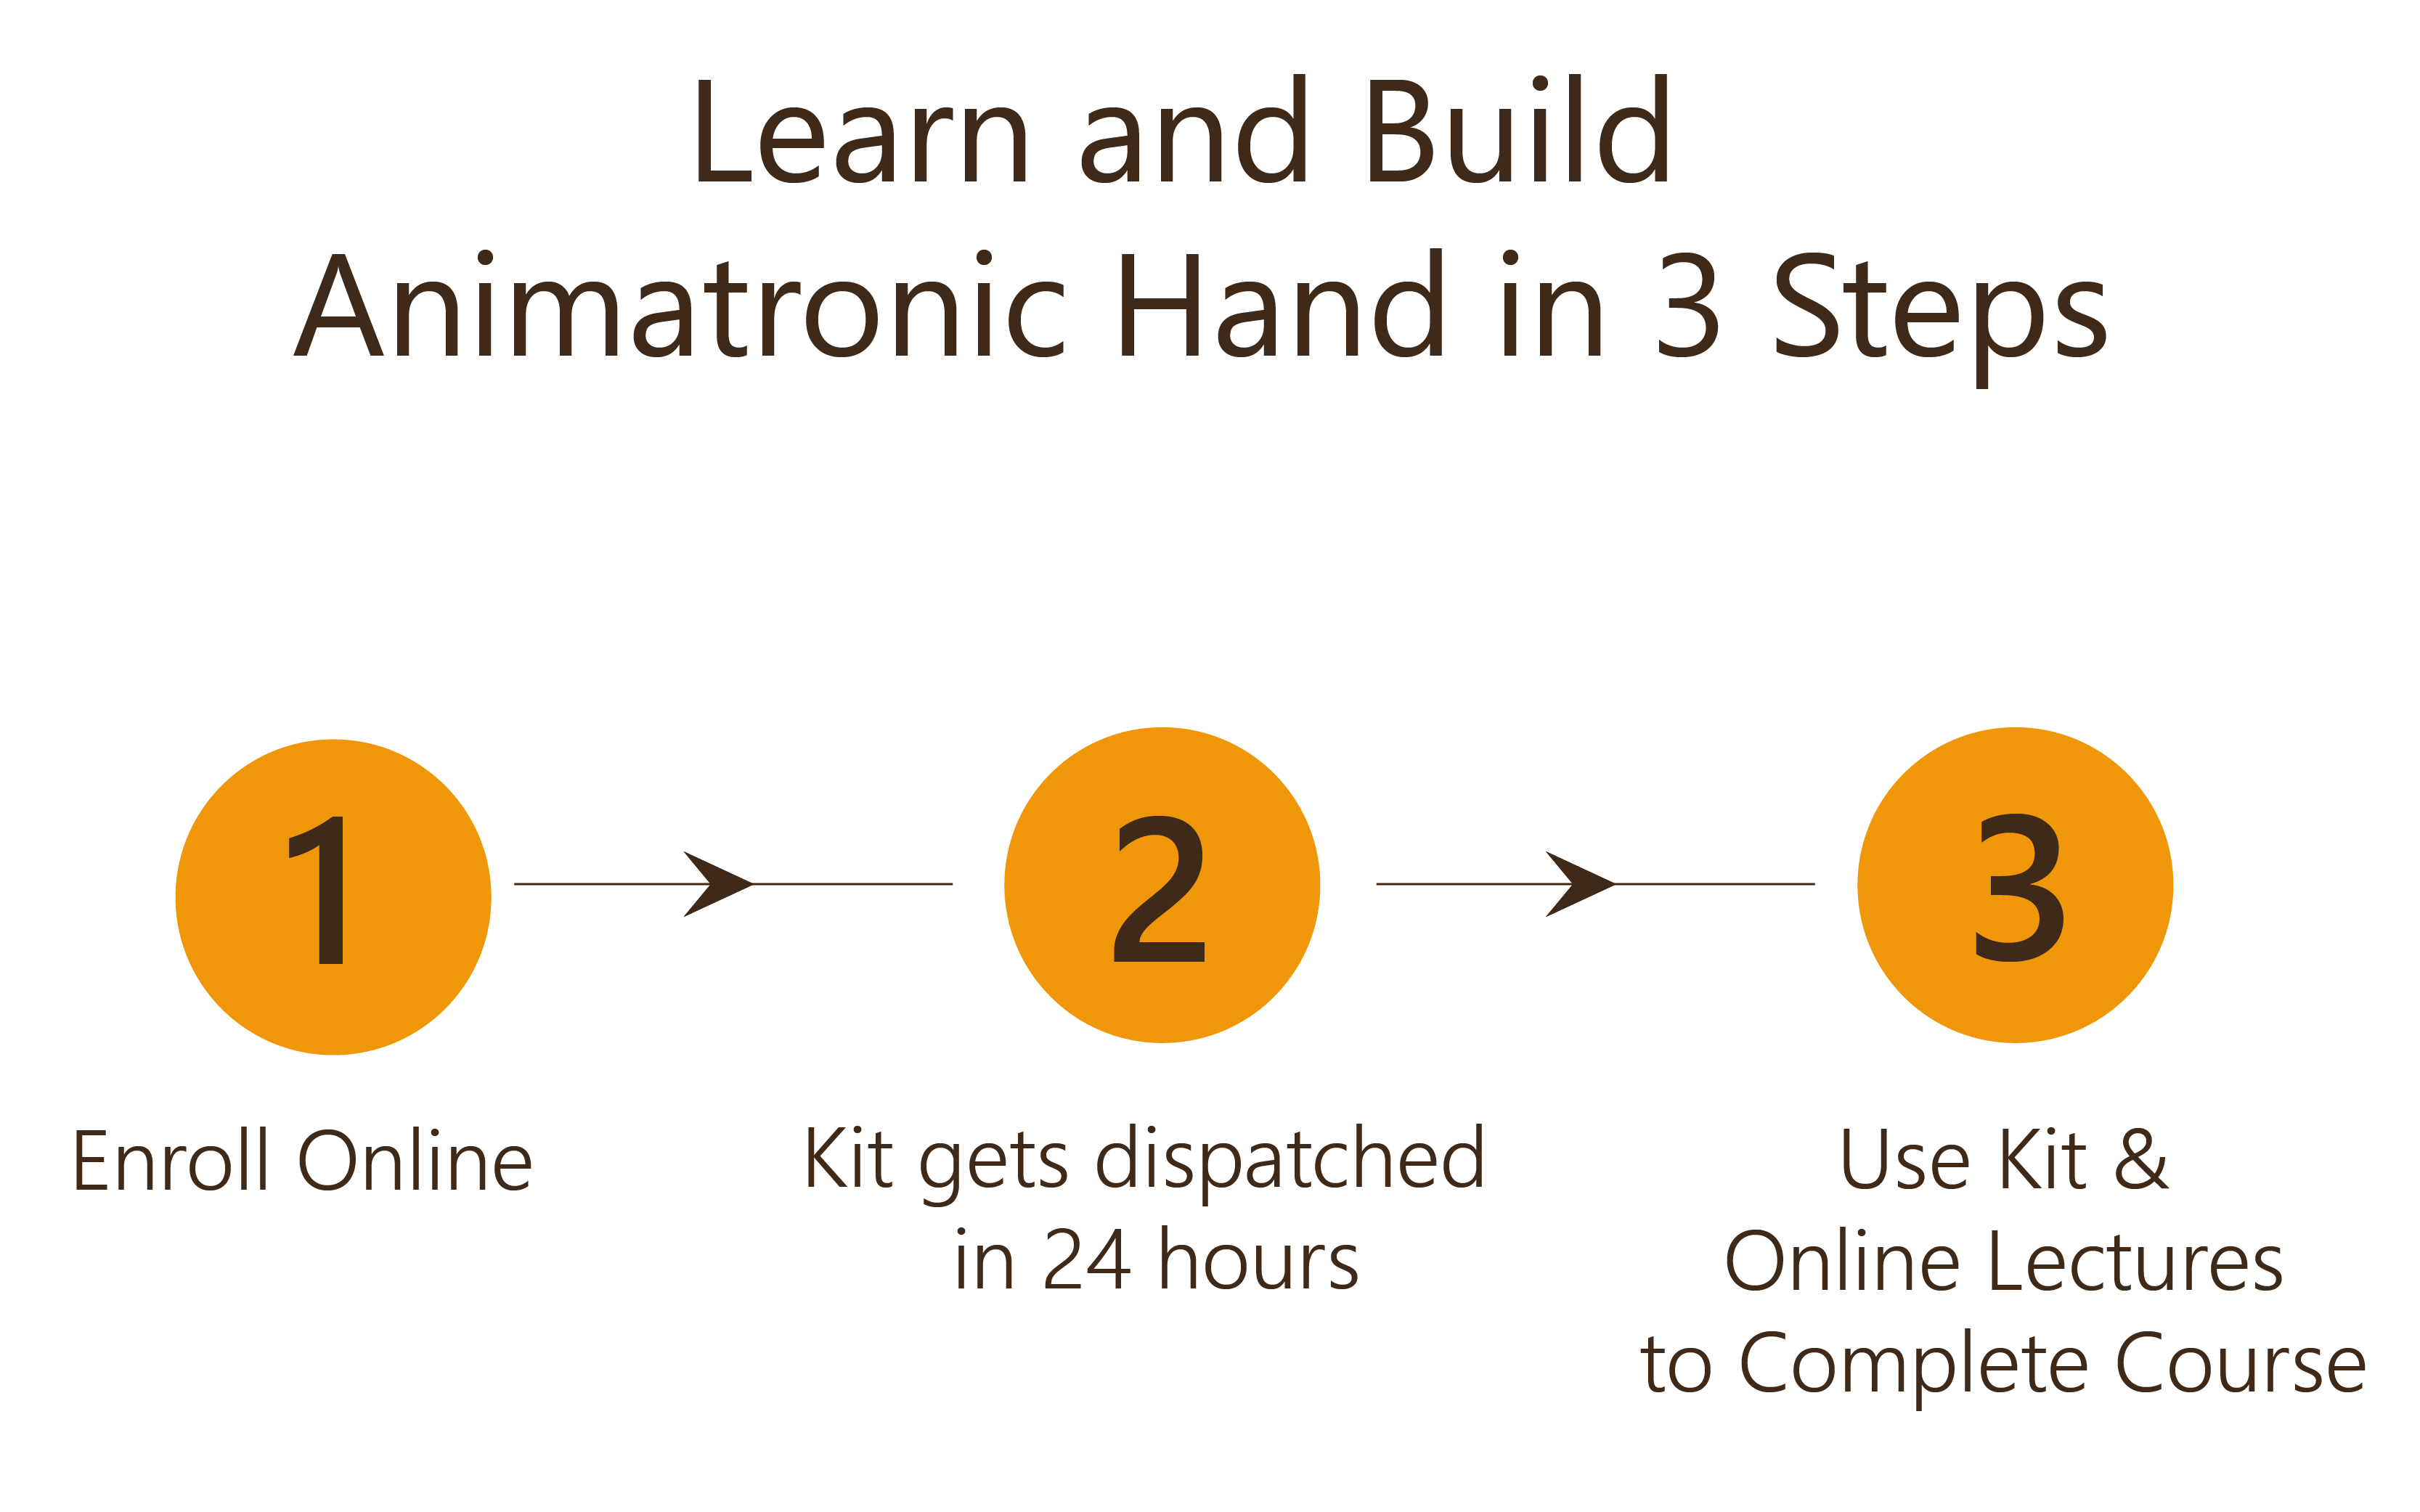 Learn and Build Animatronic Hand in 3 Steps